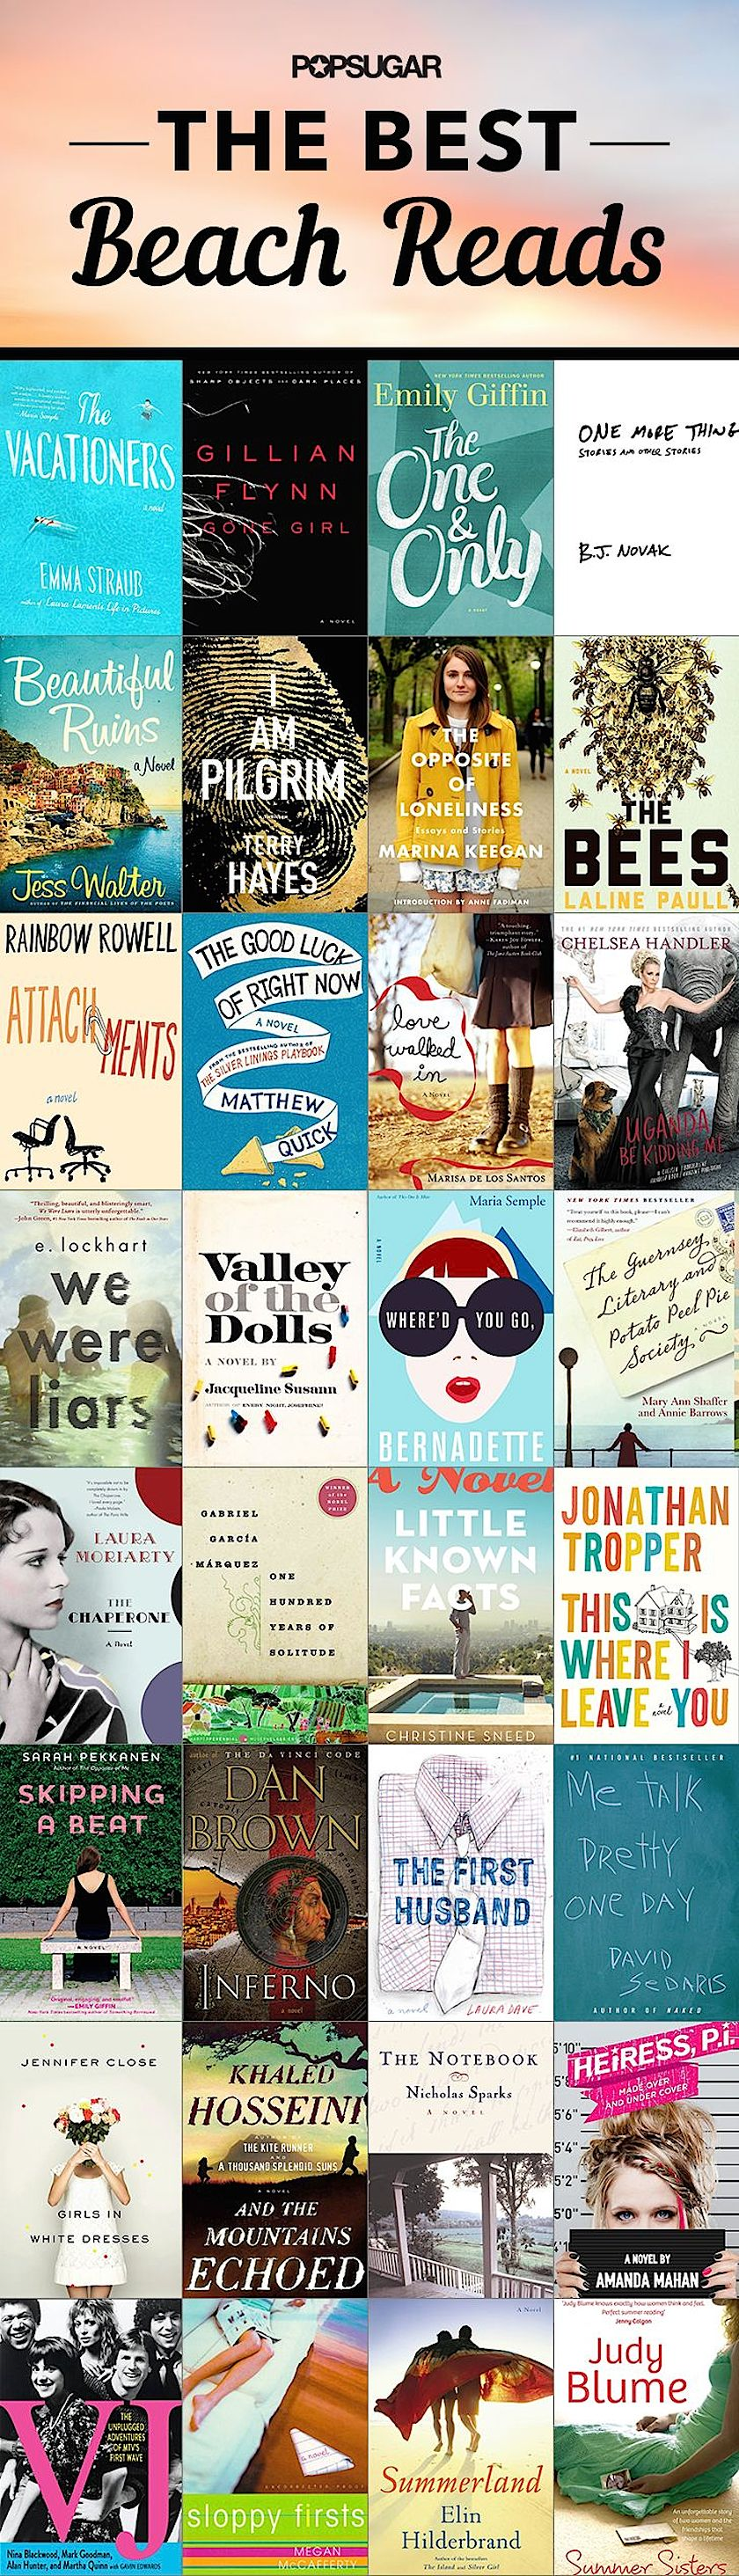 The best beach reads 2014 - infographic